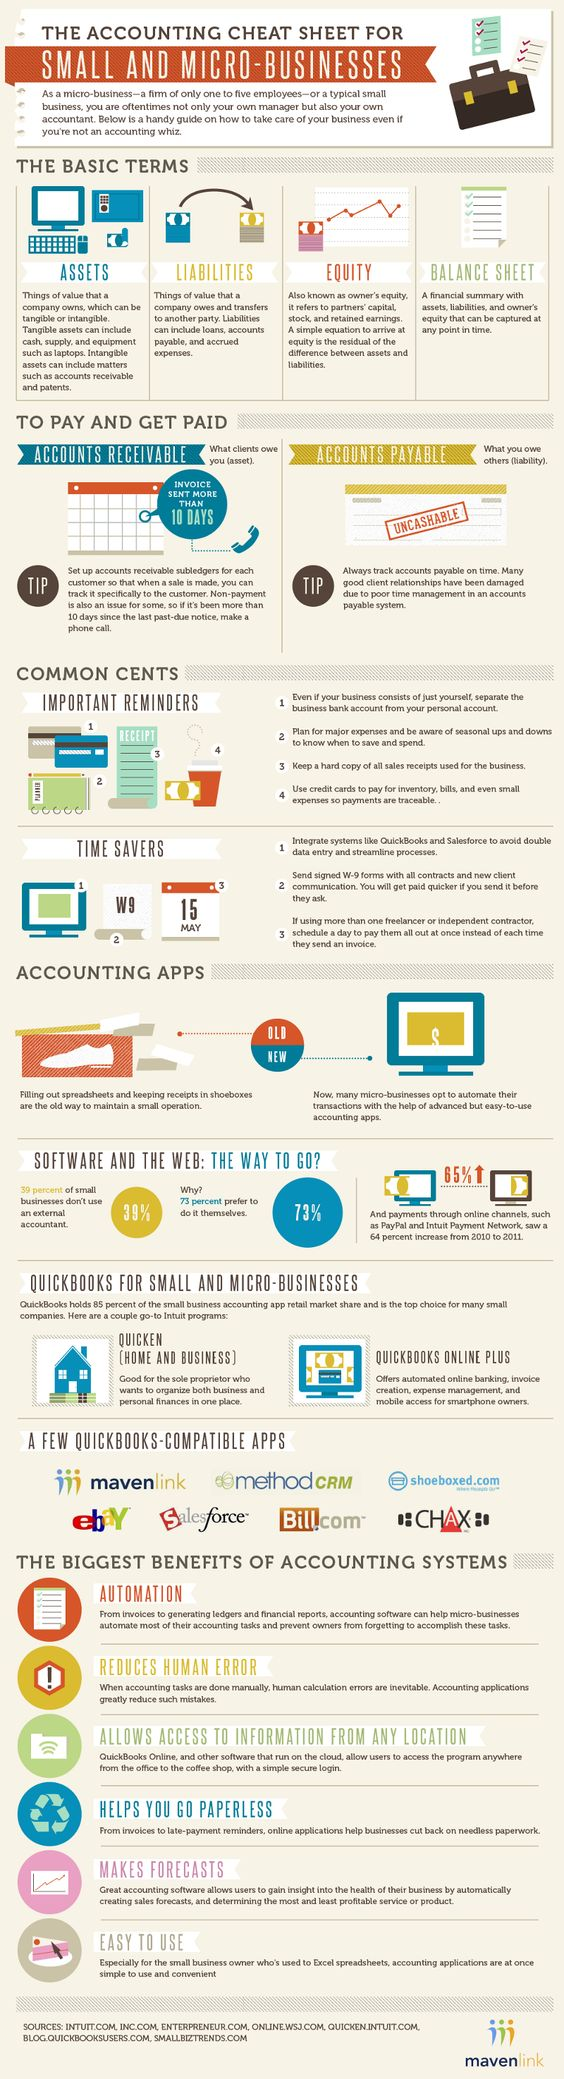 Small Business Bookkeeping CheatSheet 36 Catchy Bookkeeping Business Names